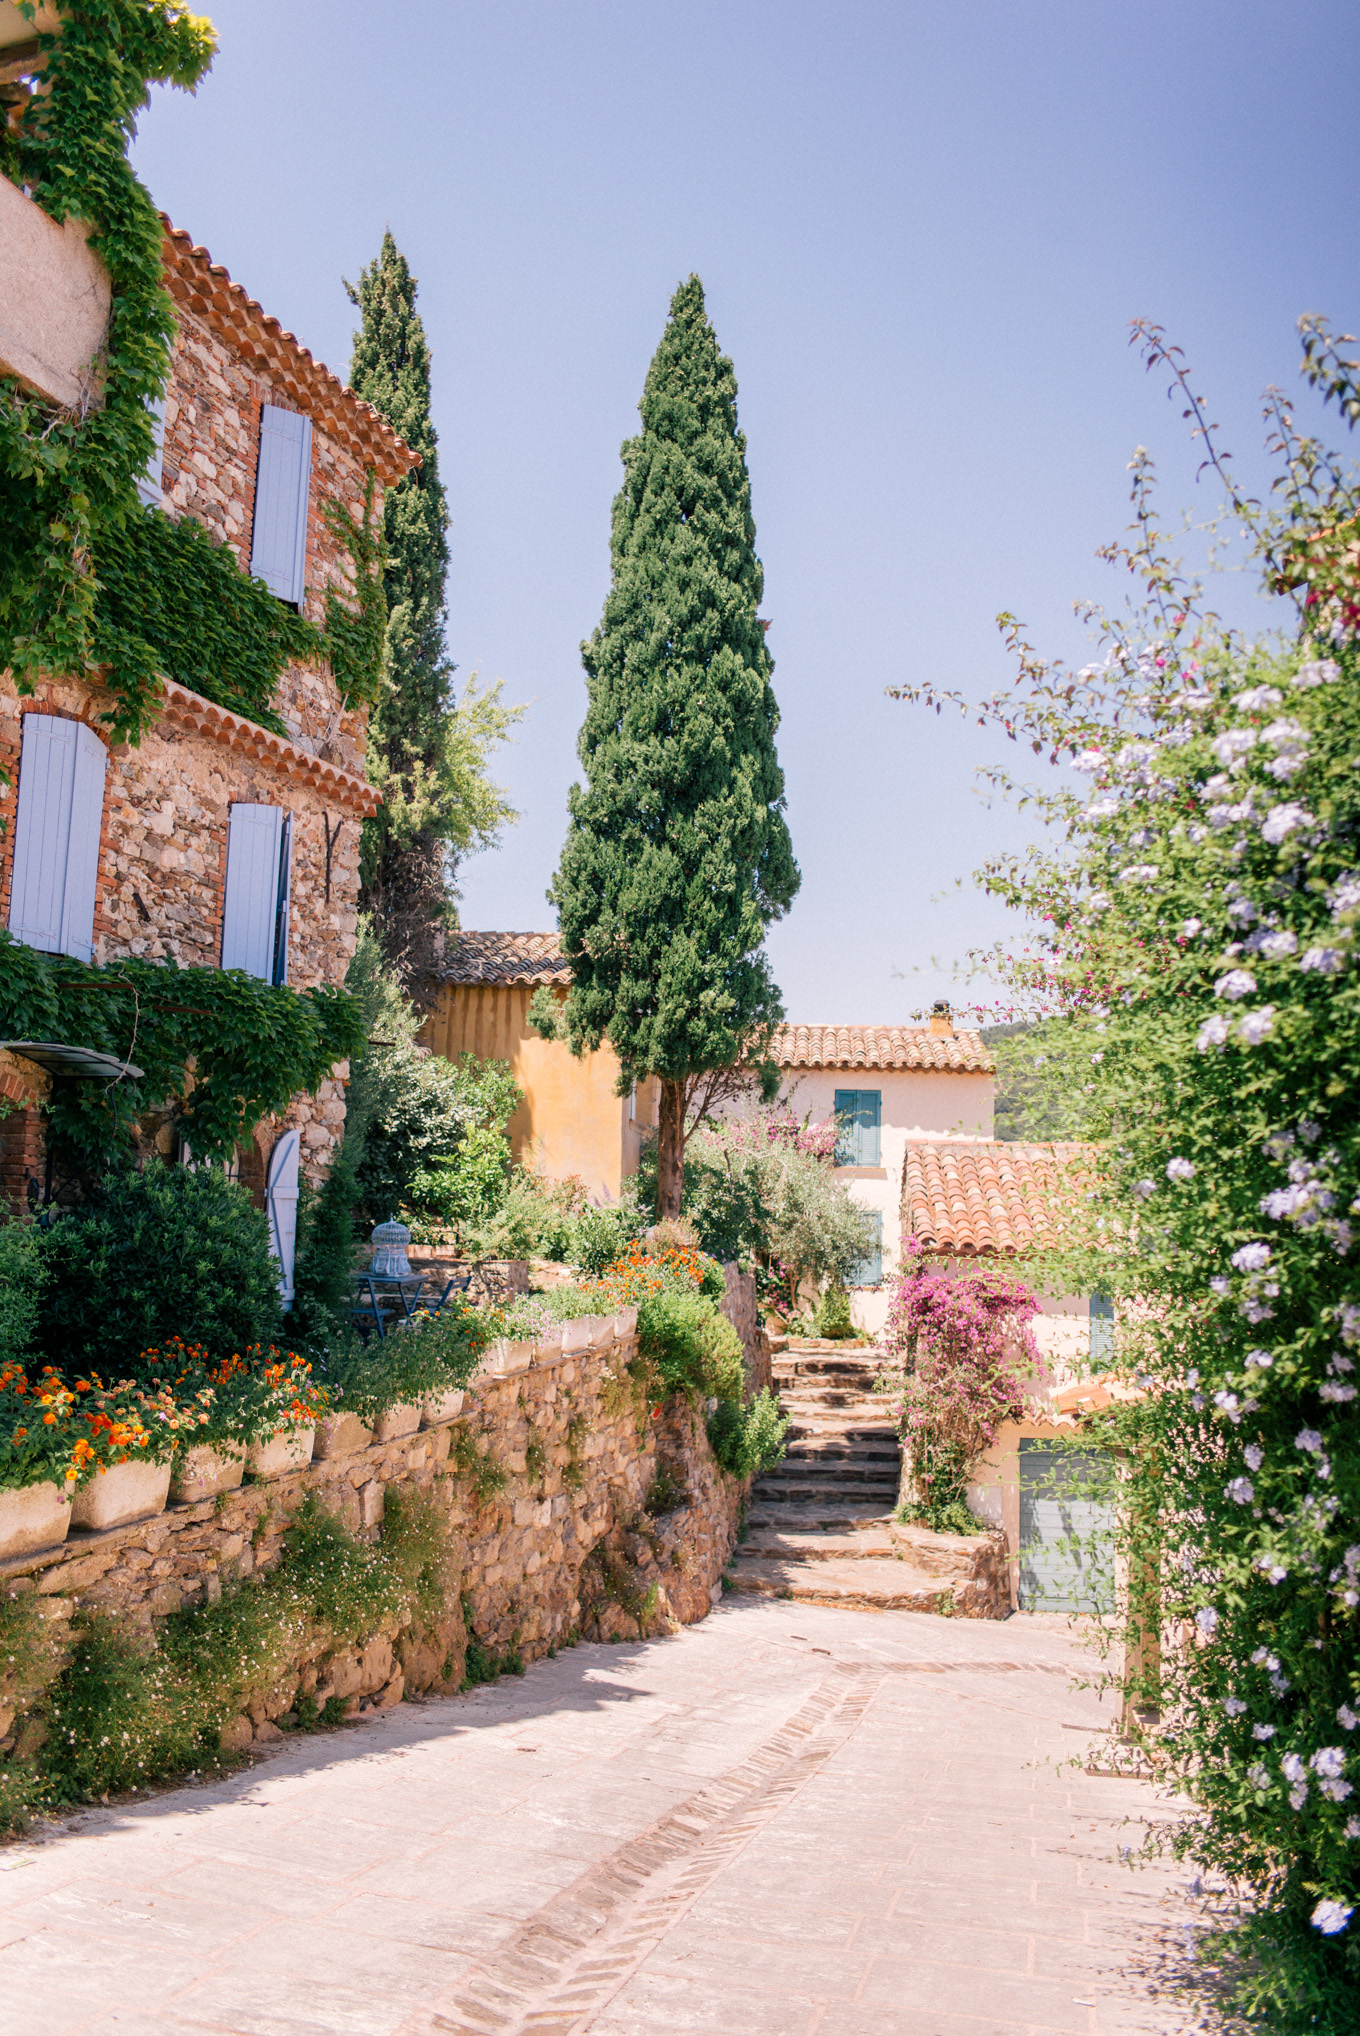 gmg-grimaud-france-1009966